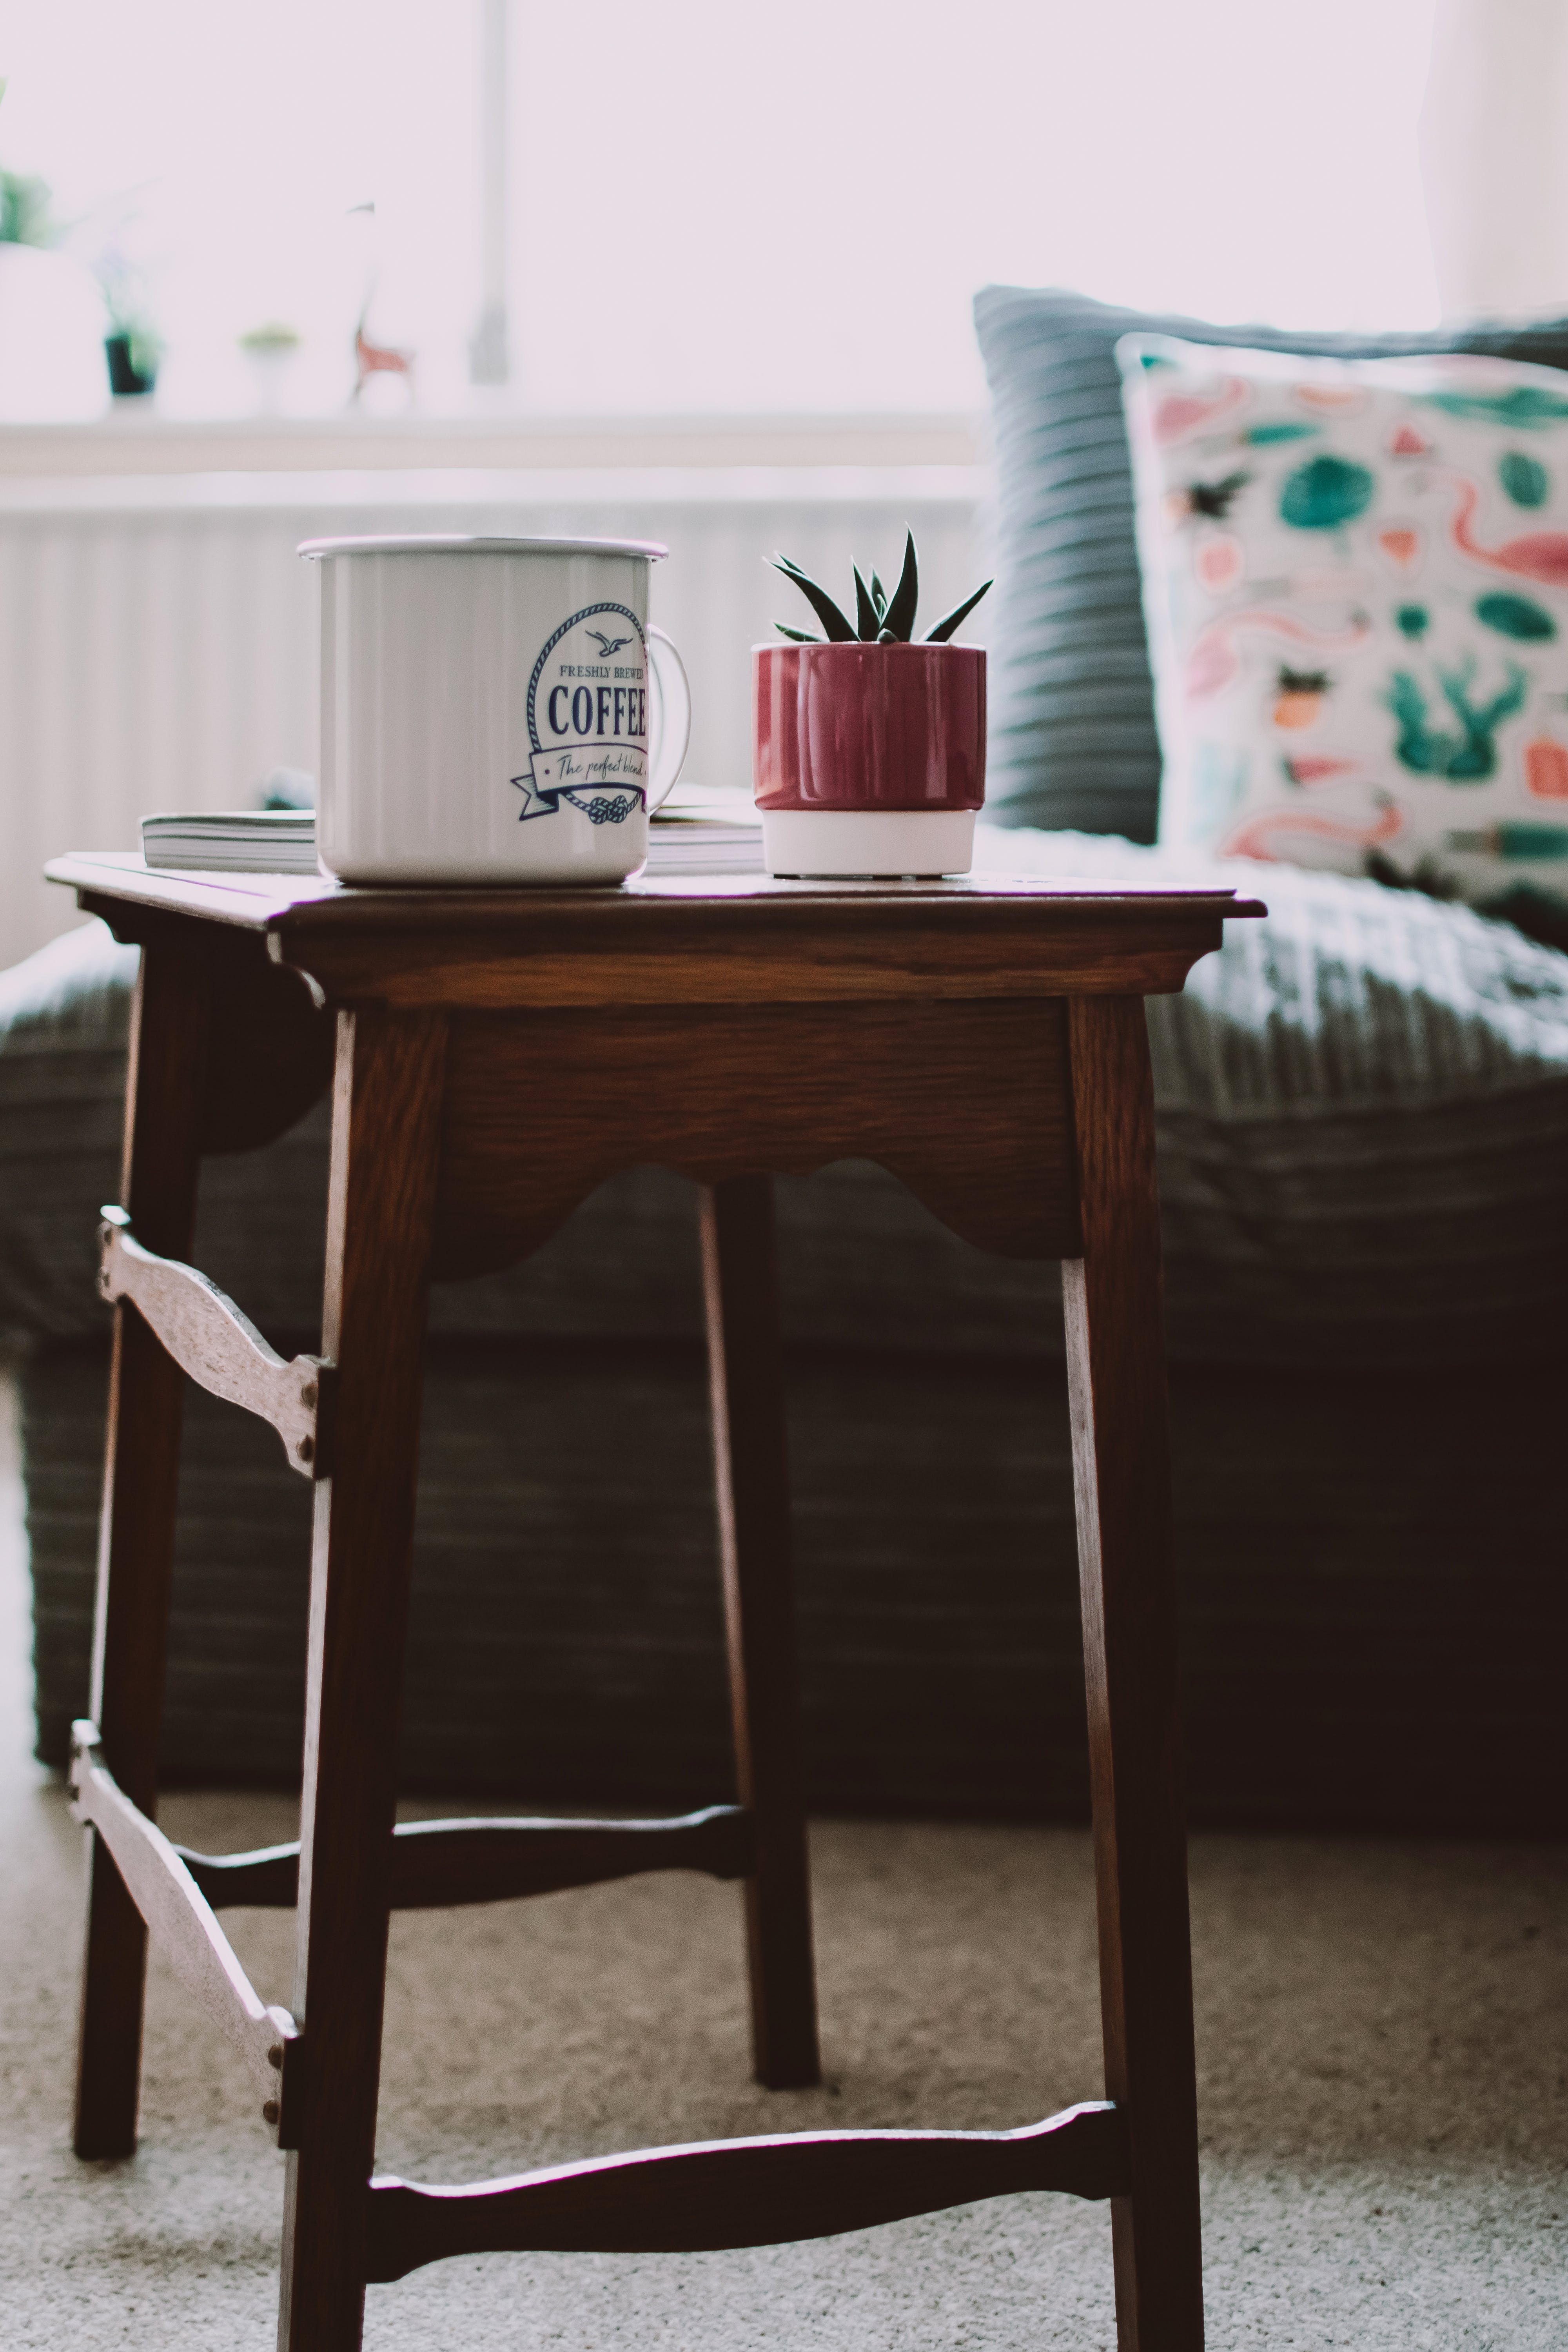 Selective Focus Photography of White Mug on Wooden Stool